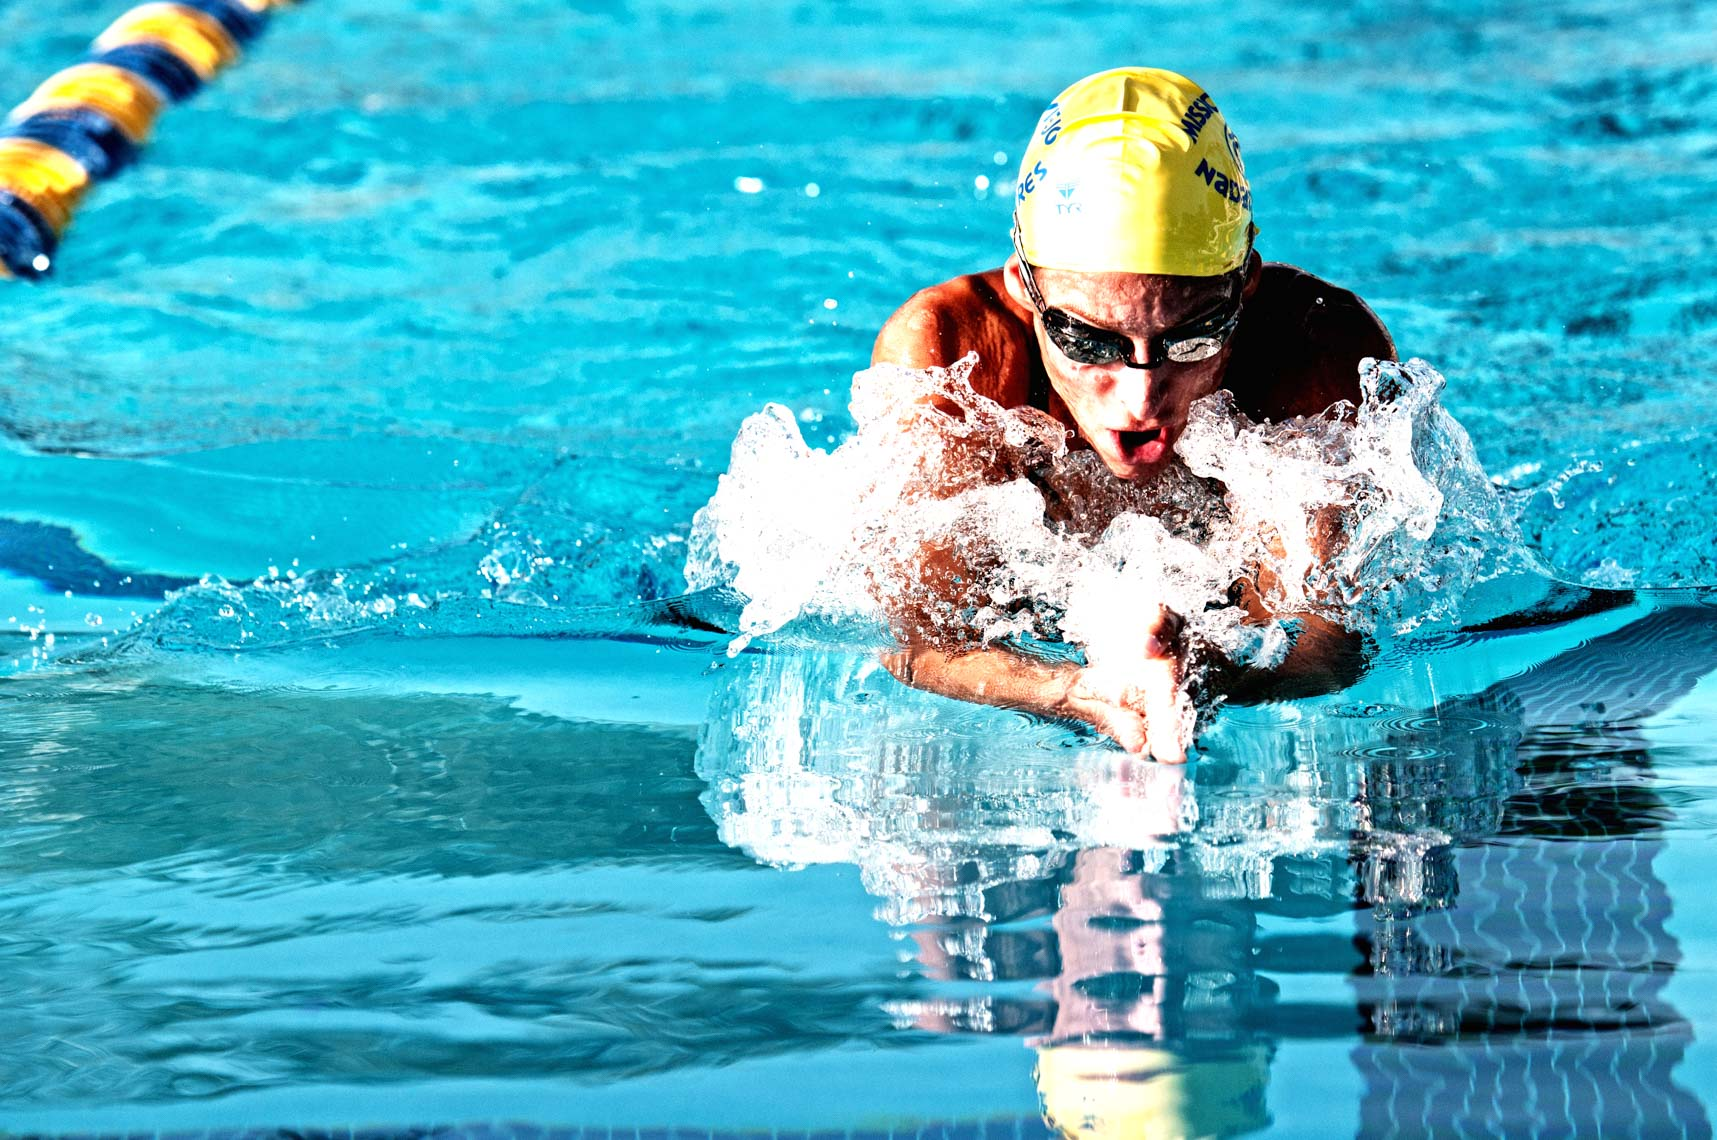 breaststroke swimmer